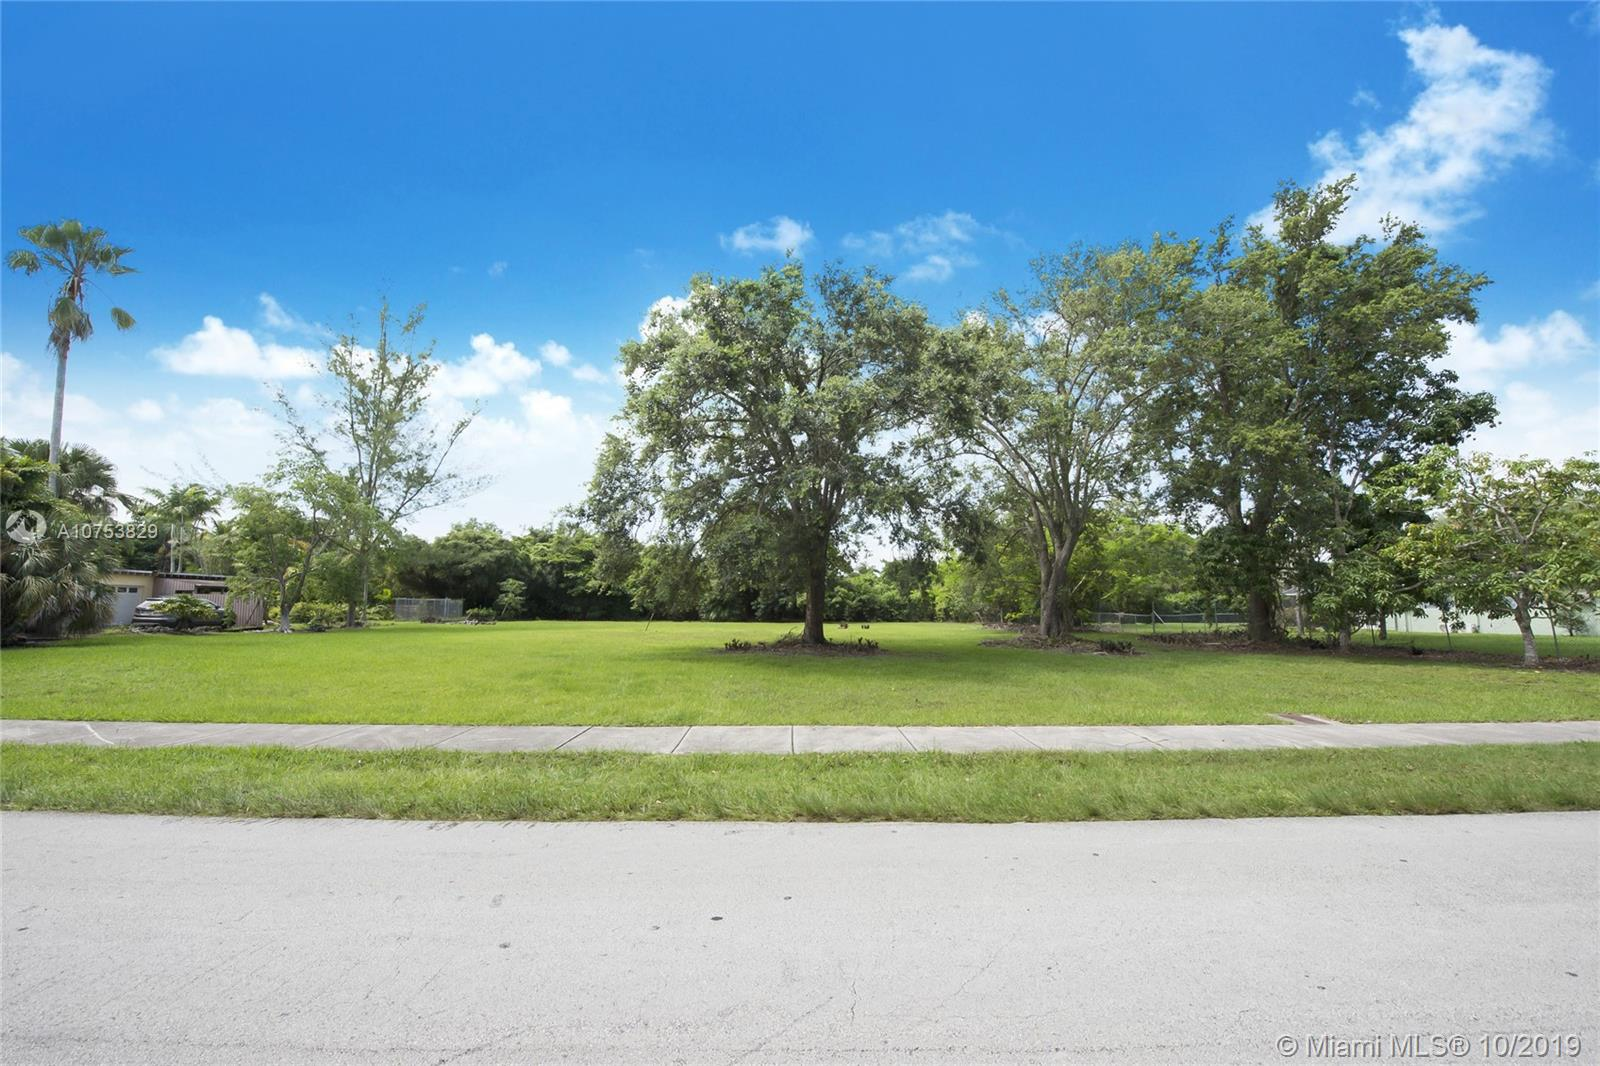 7750 SW 117 St  For Sale A10753829, FL